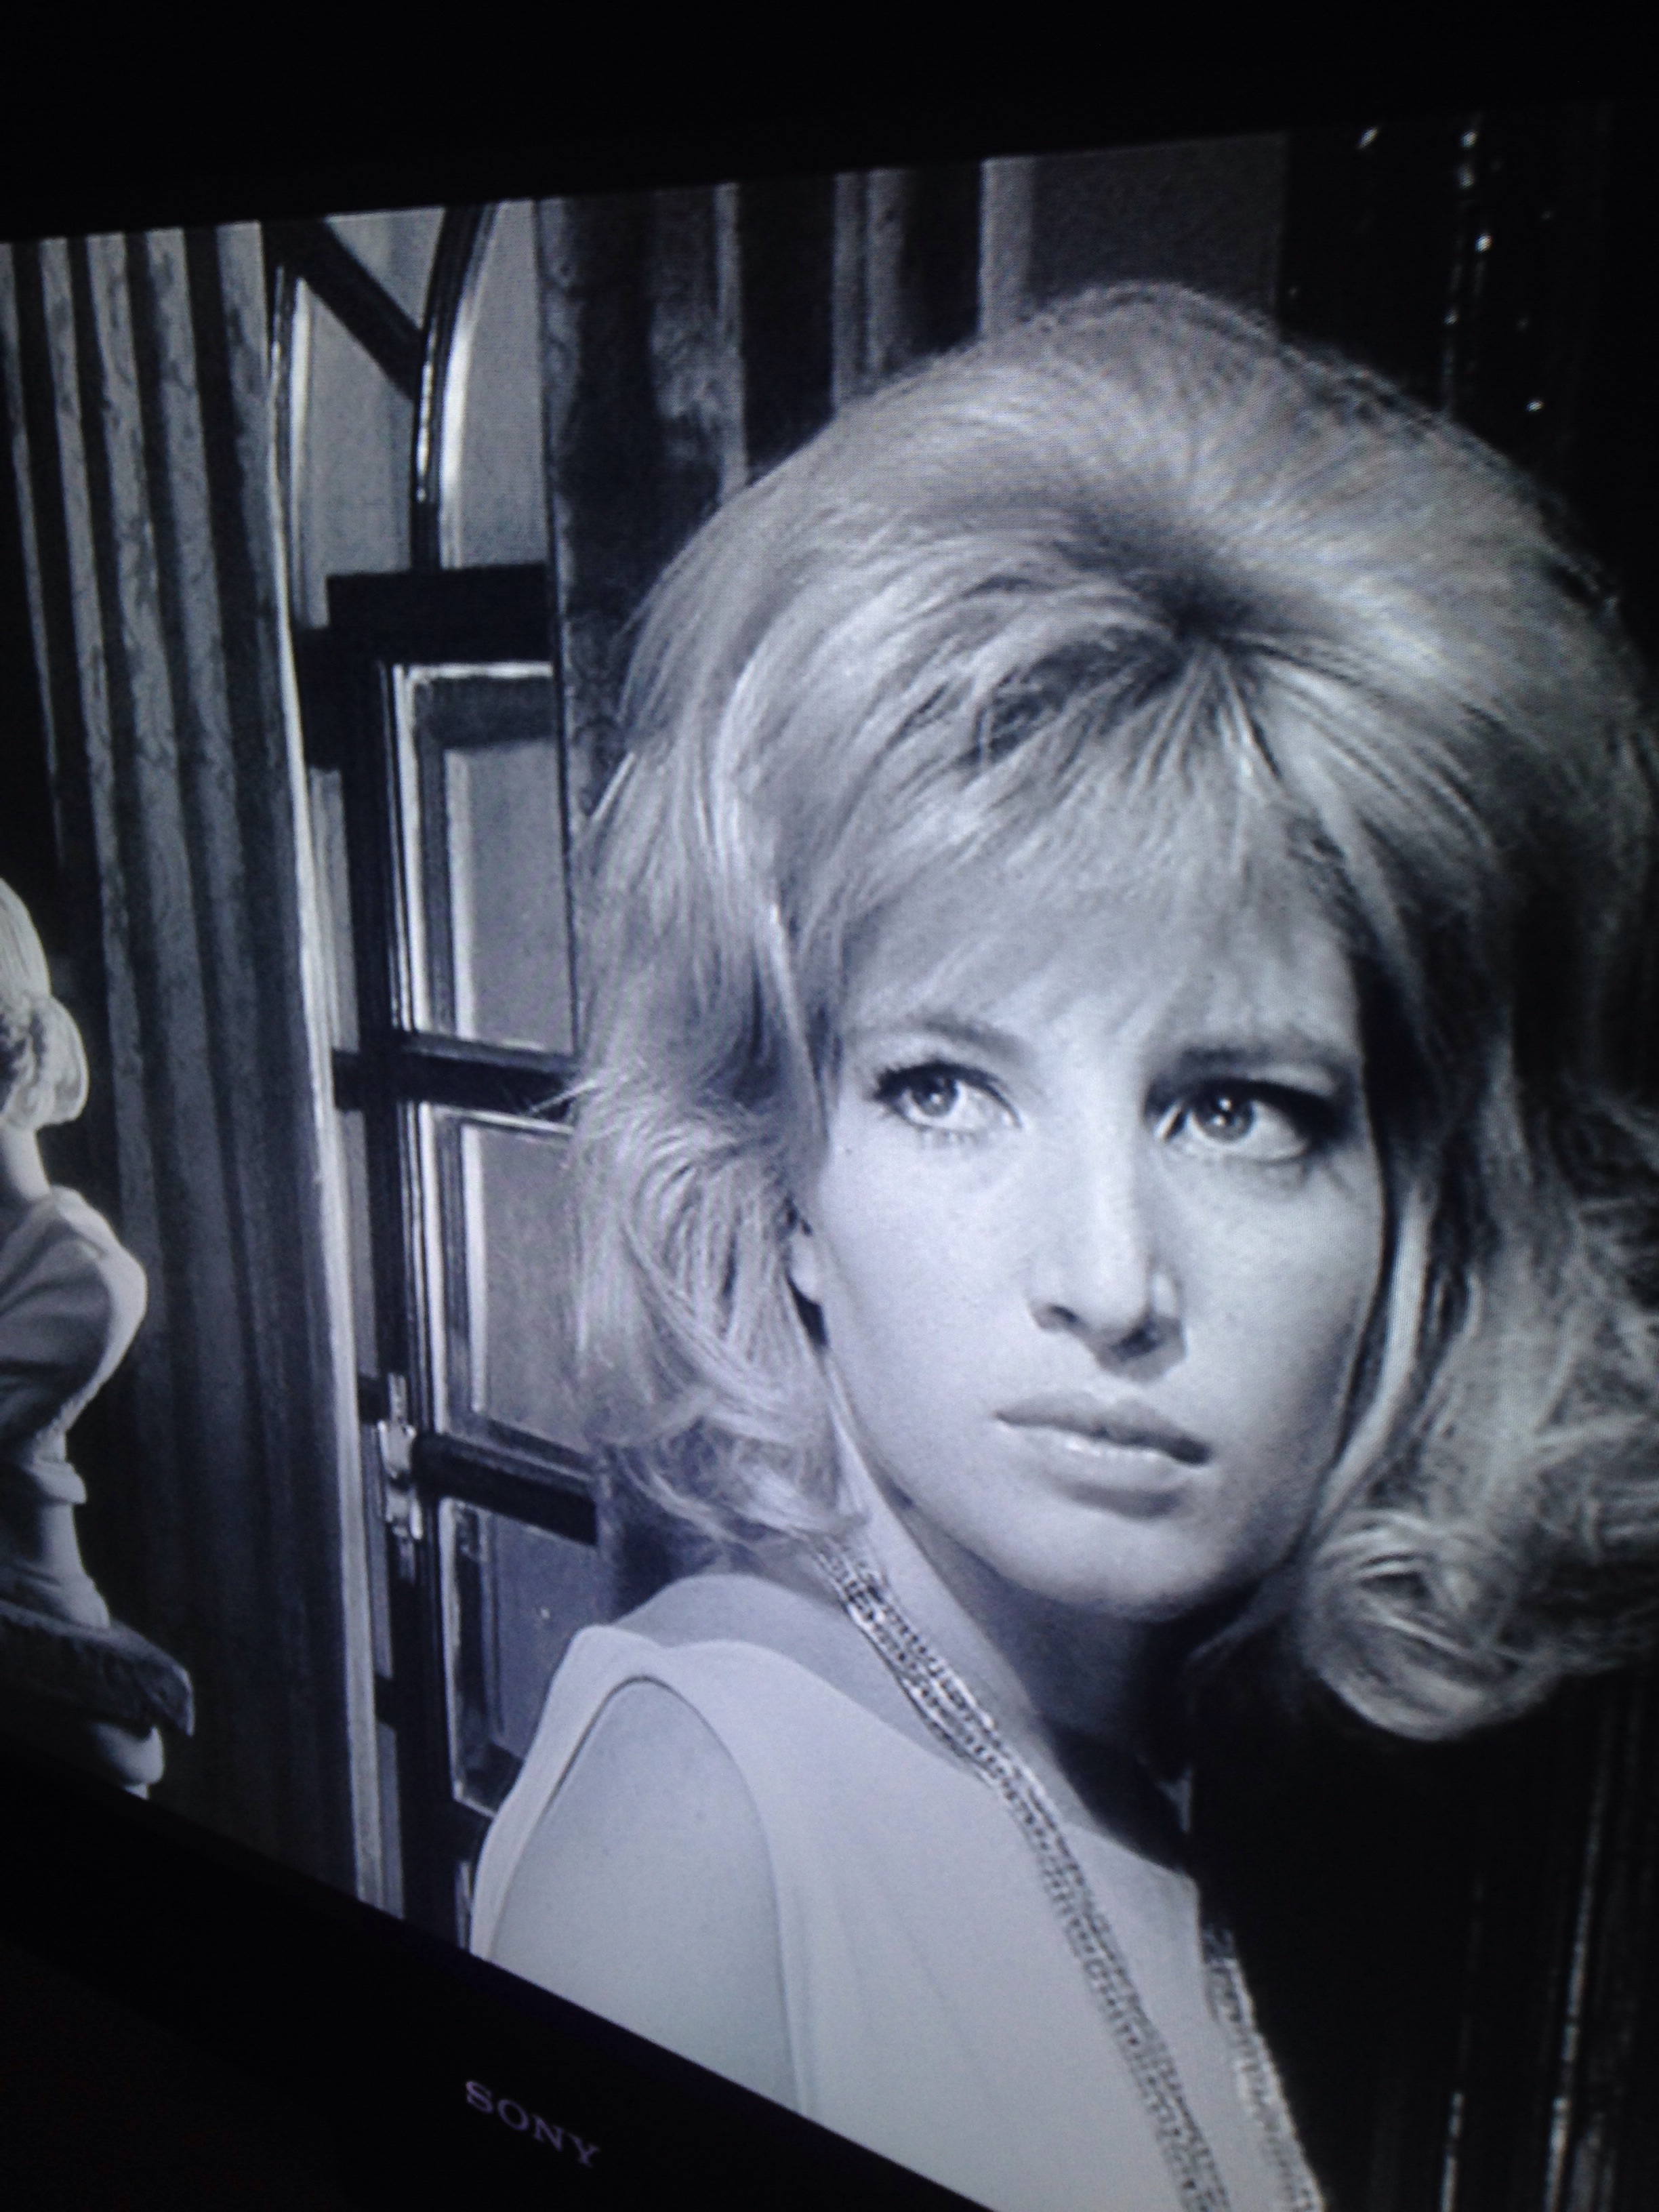 """Monica Vitti, from Antonioni's, """"L'Eclisse"""", 1963, screen capture by author sometime in early 2017."""